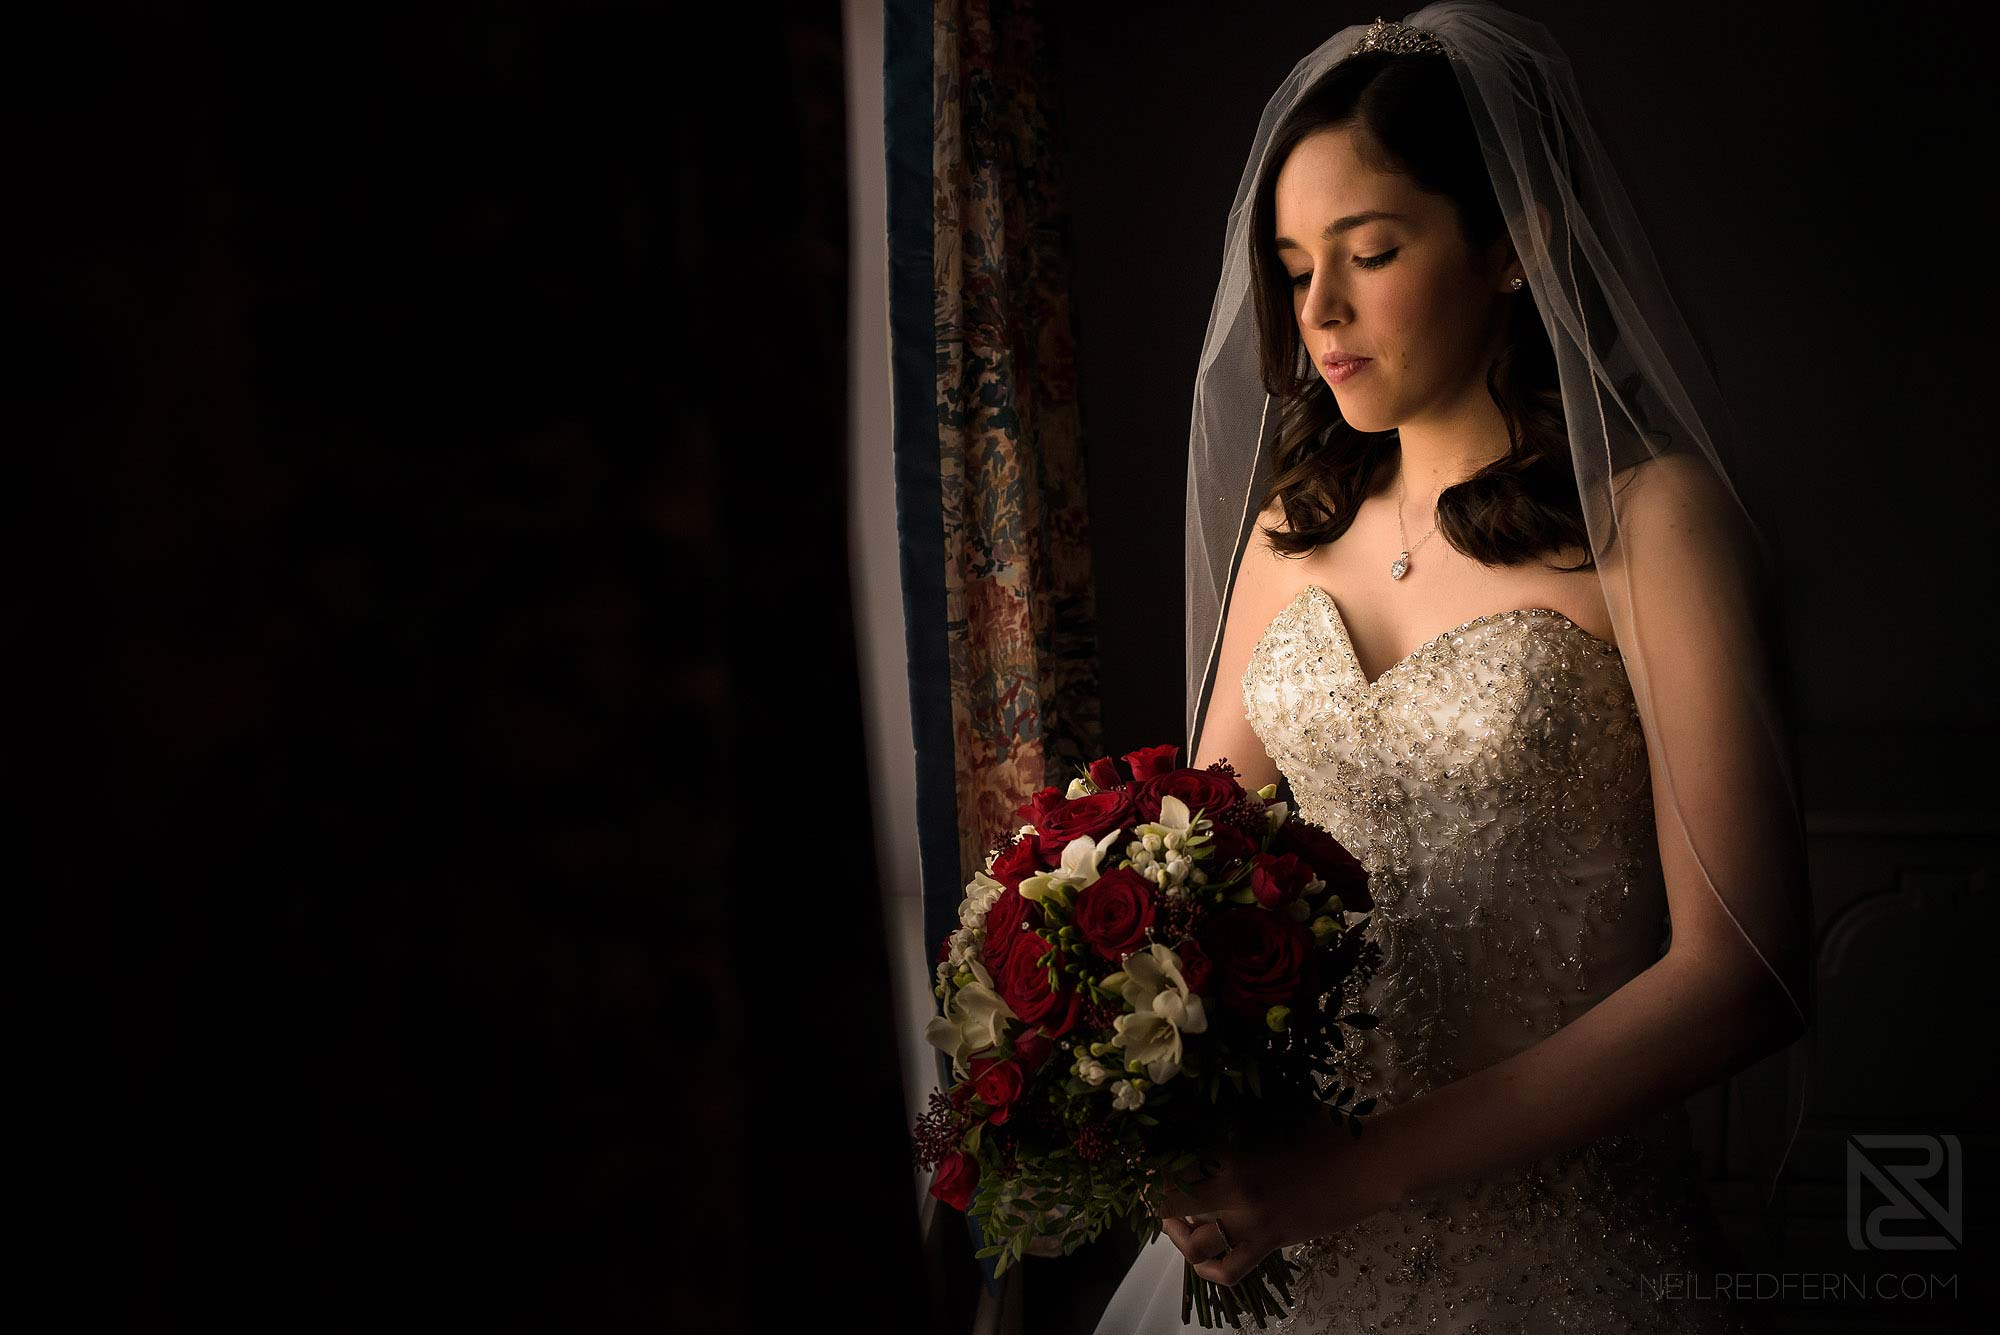 beautiful portrait of bride before leaving house